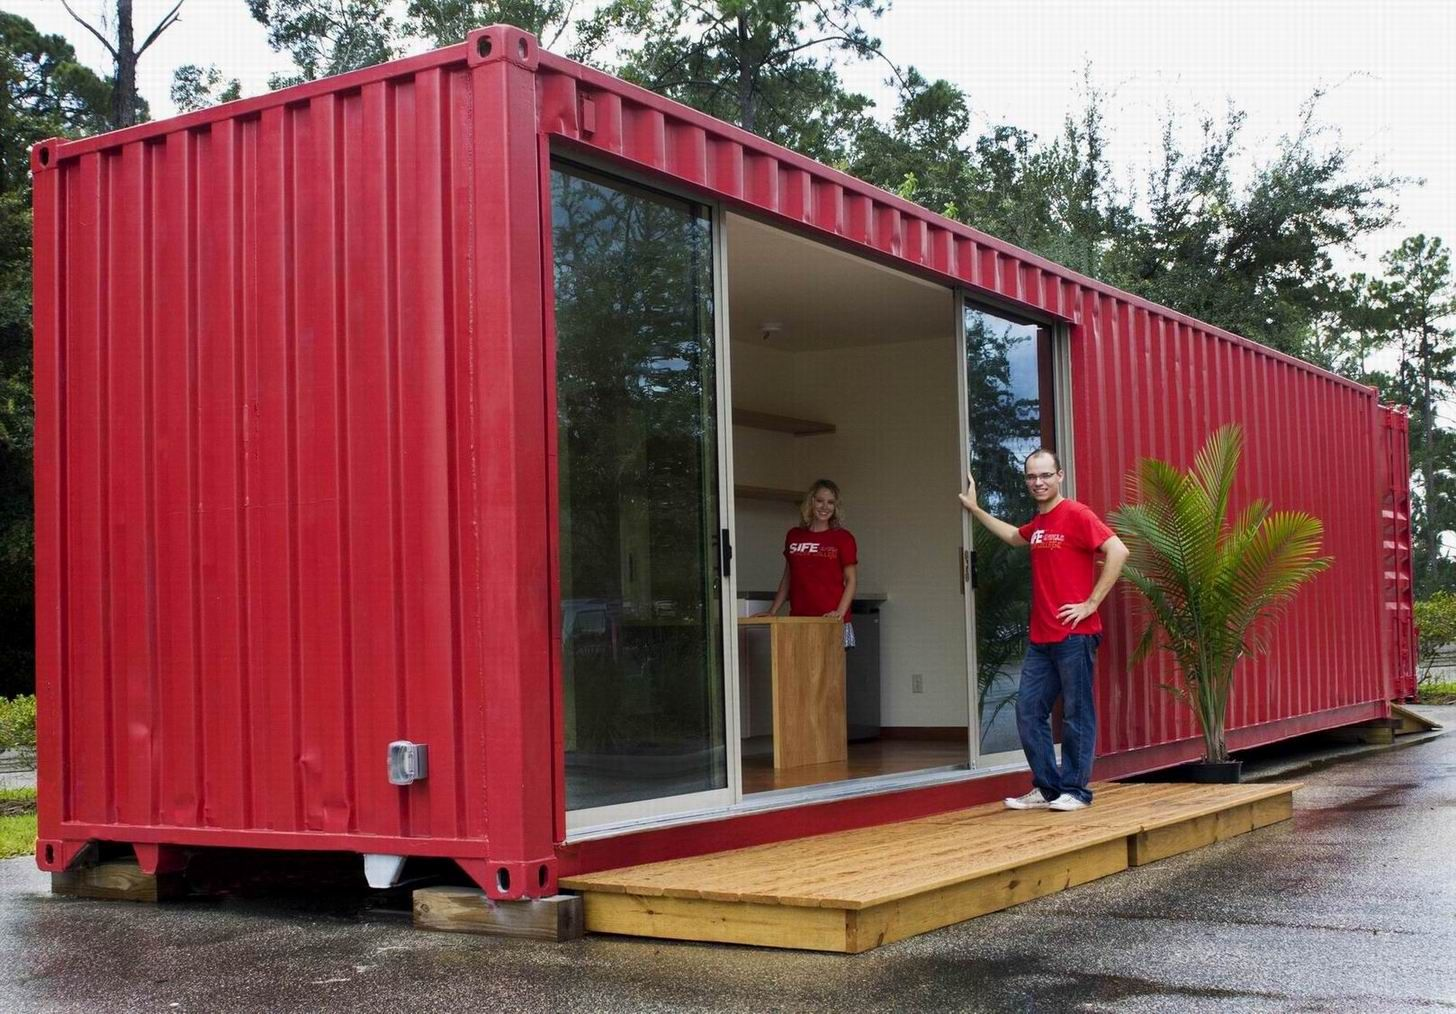 Image House Shipping Container Google Search Container Homes Cost Container House Plans Shipping Container Cabin